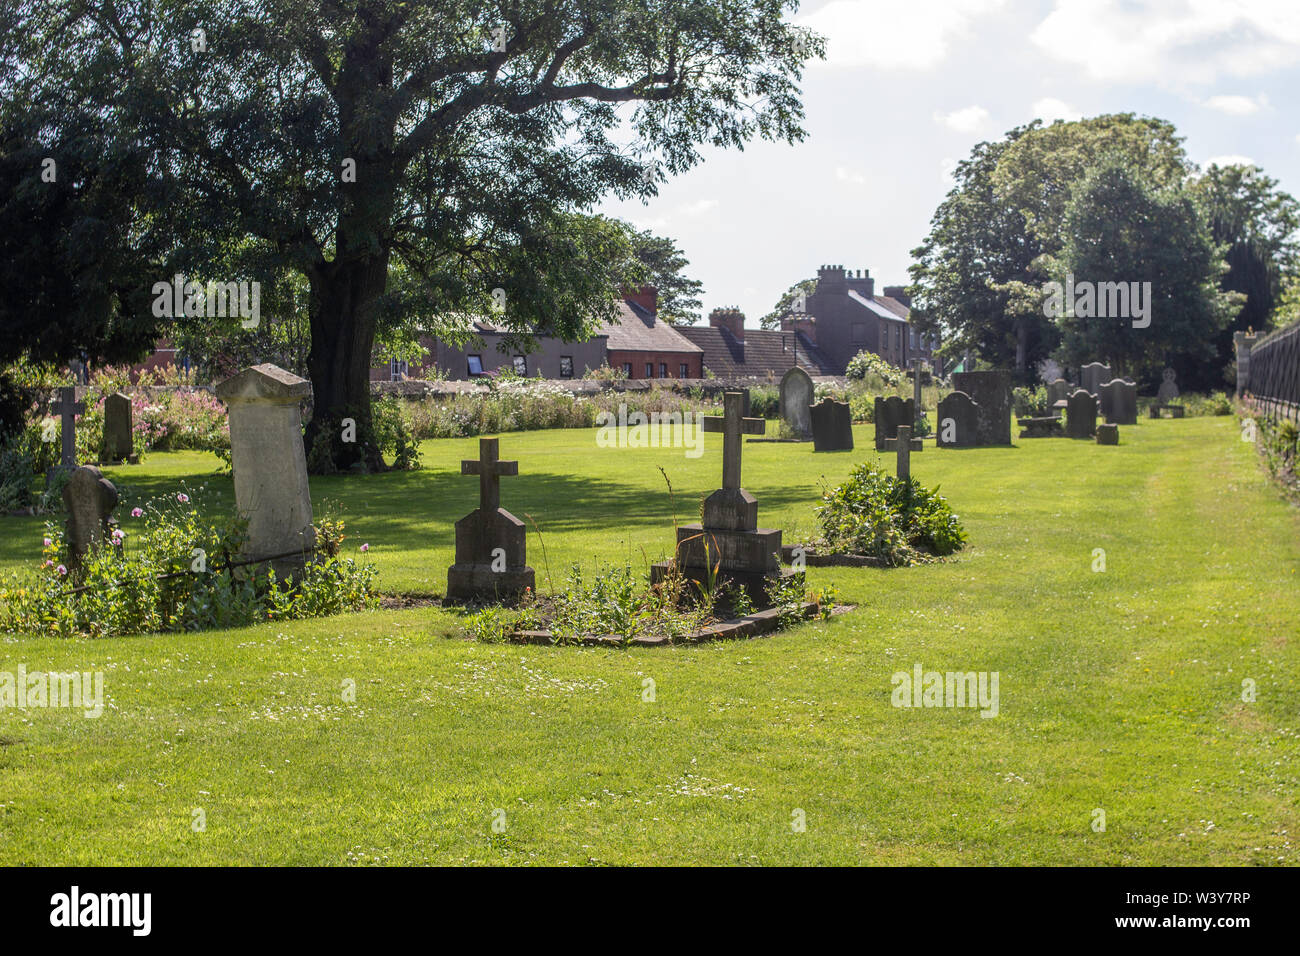 The military graveyard at  the Royal Hospital Kilmainham, Dublin, Ireland, one of three graveyards in this complex, this one reserved for officers. - Stock Image